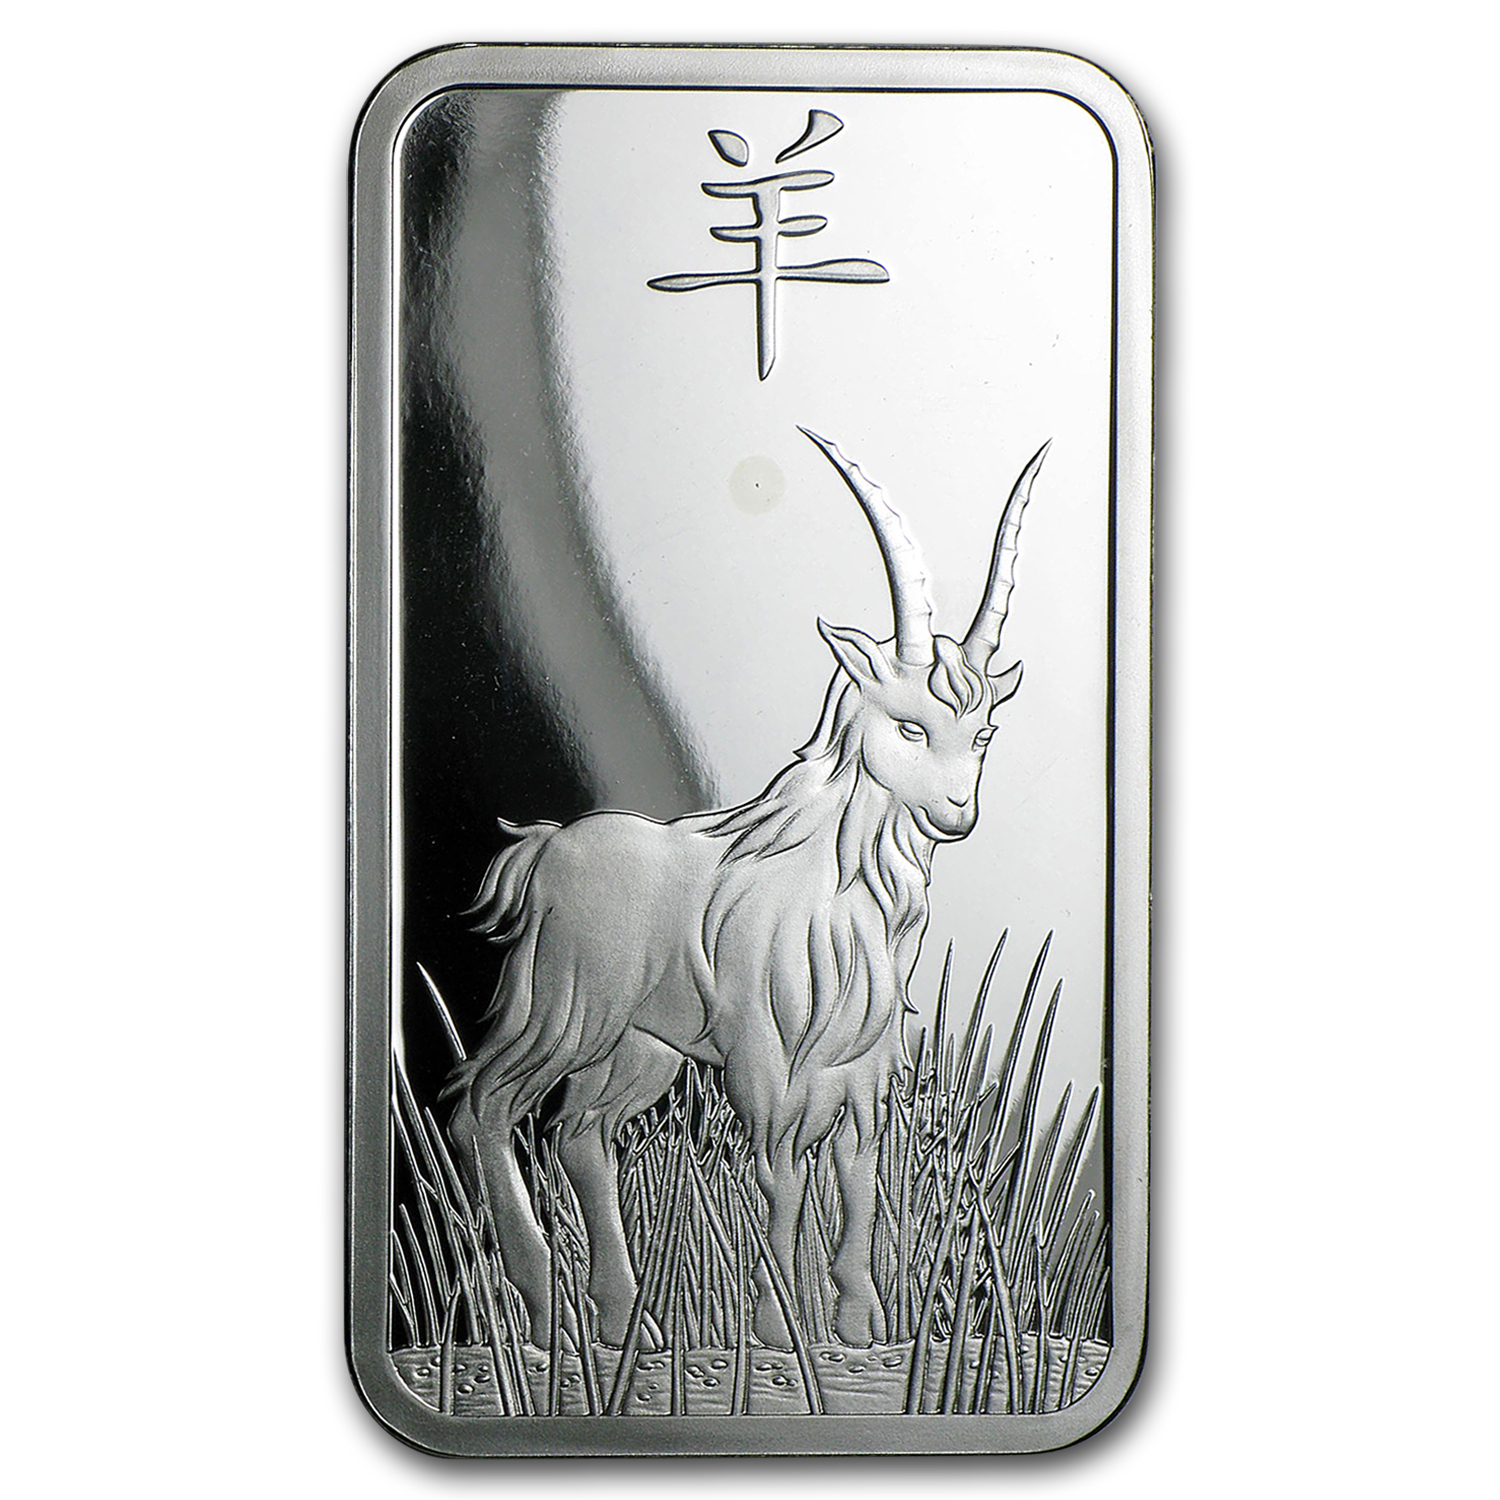 1 Oz Silver Bar Pamp Suisse Year Of The Goat No